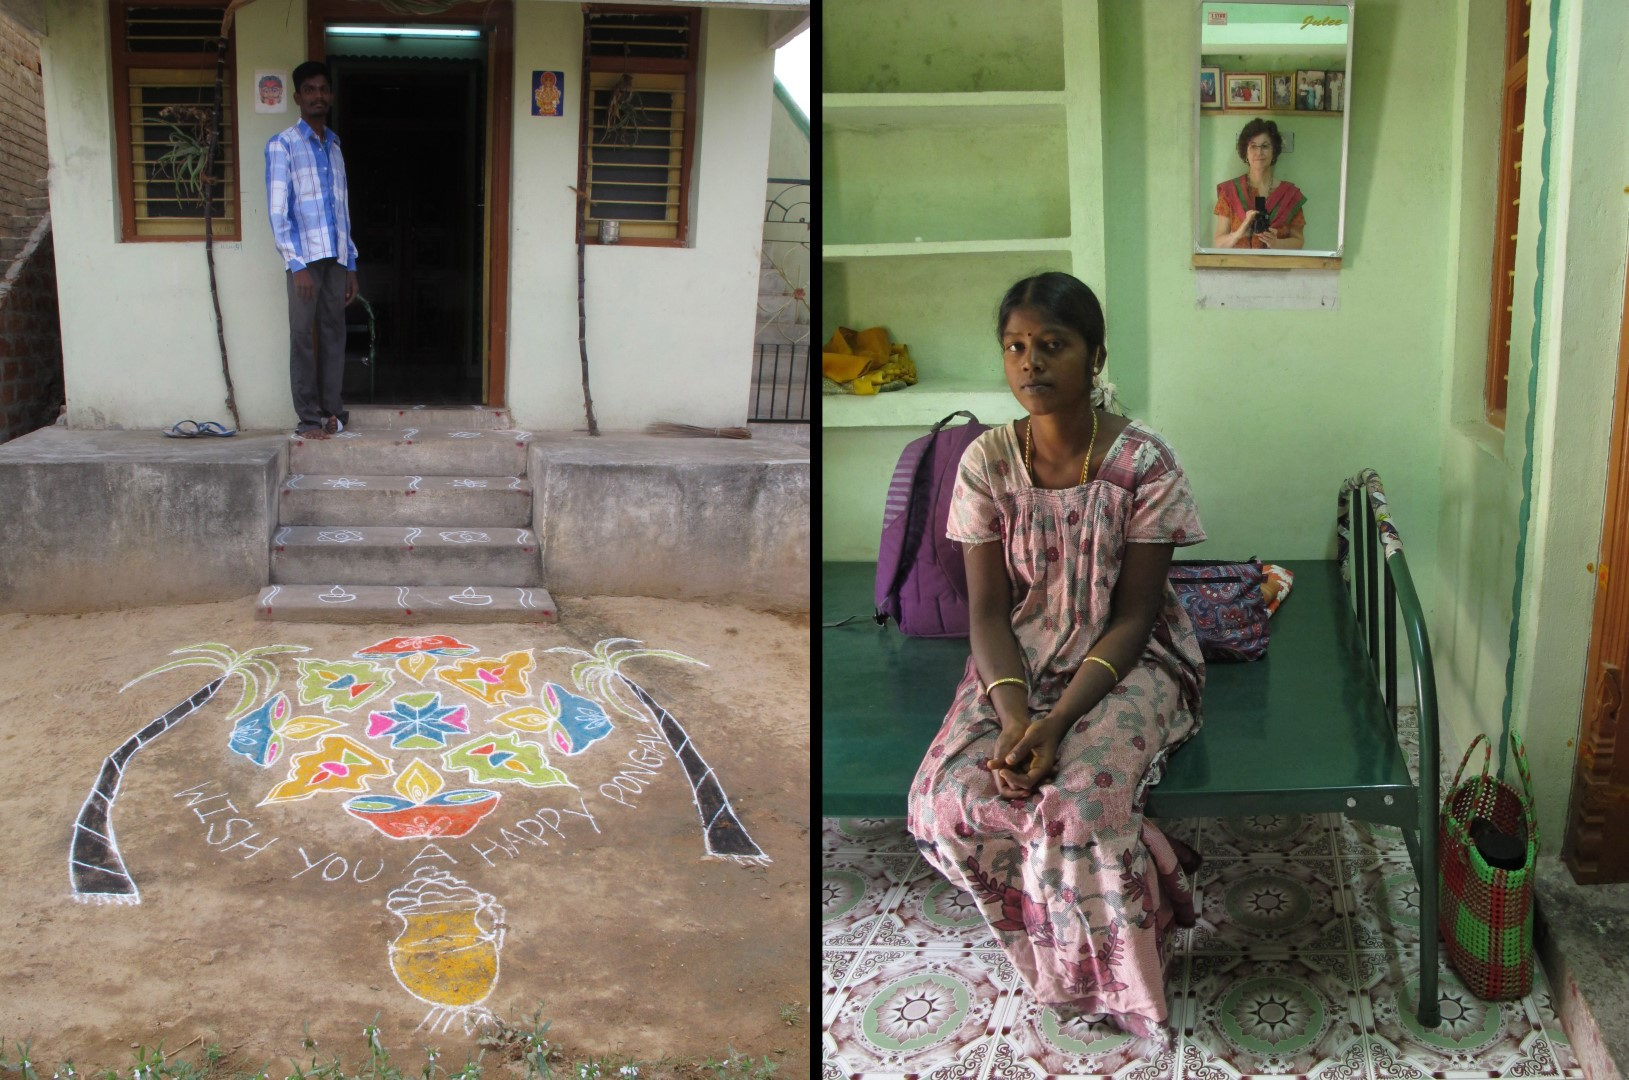 My thambi, Ravi, in front of his house | Indurani and I inside Ravi's house